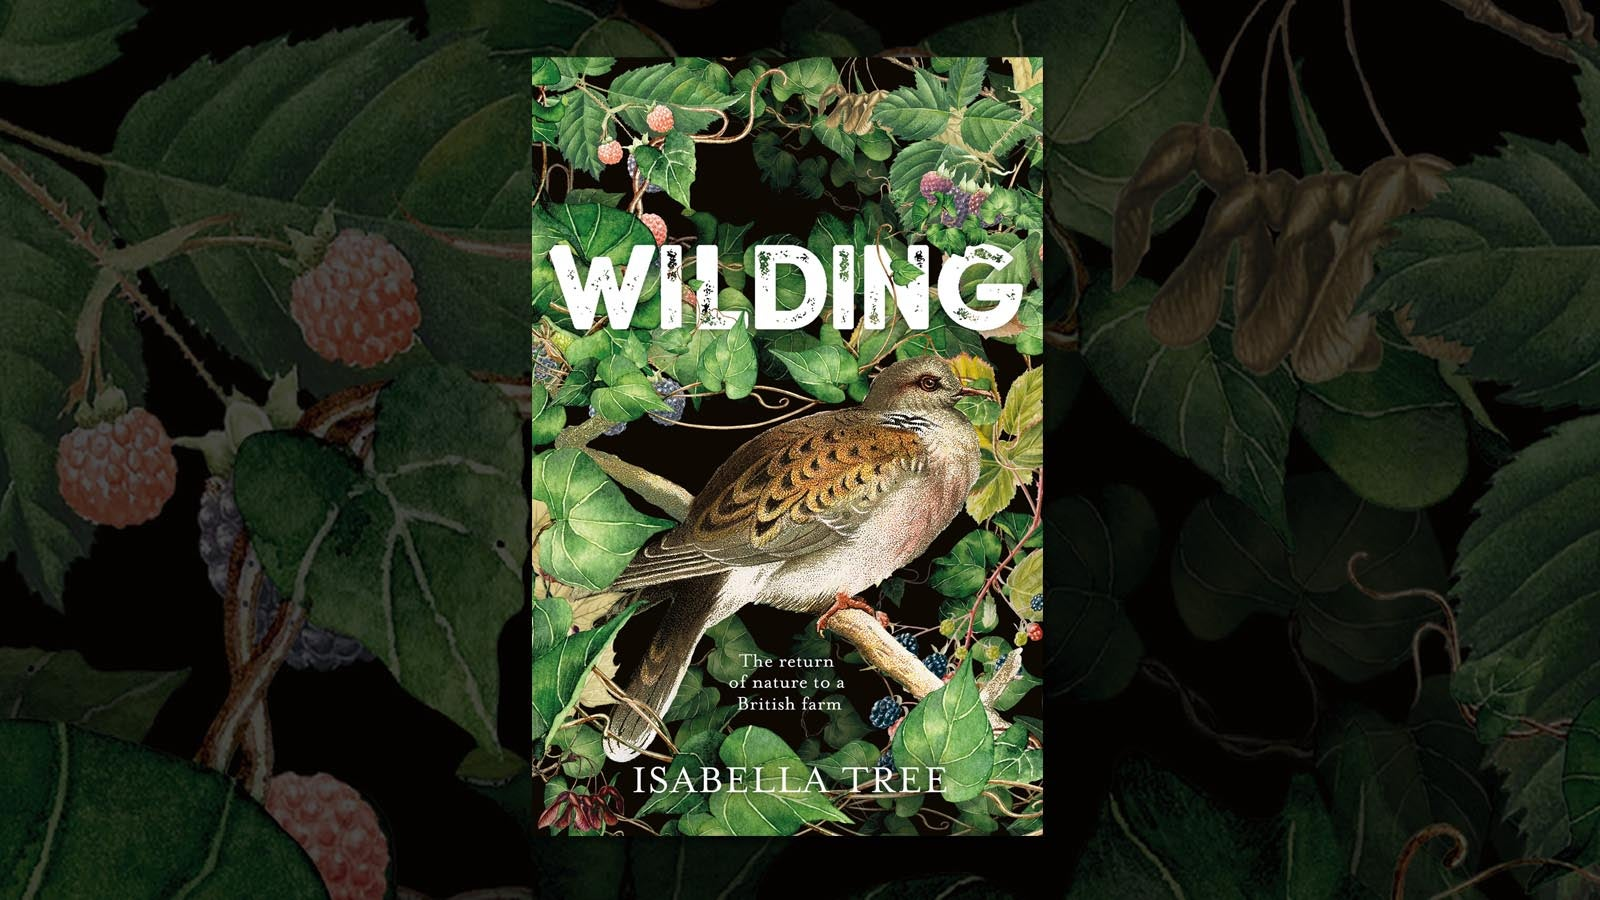 Jacket cover for Wilding by Isabella Tree , featuring a bird surrounded by foliage